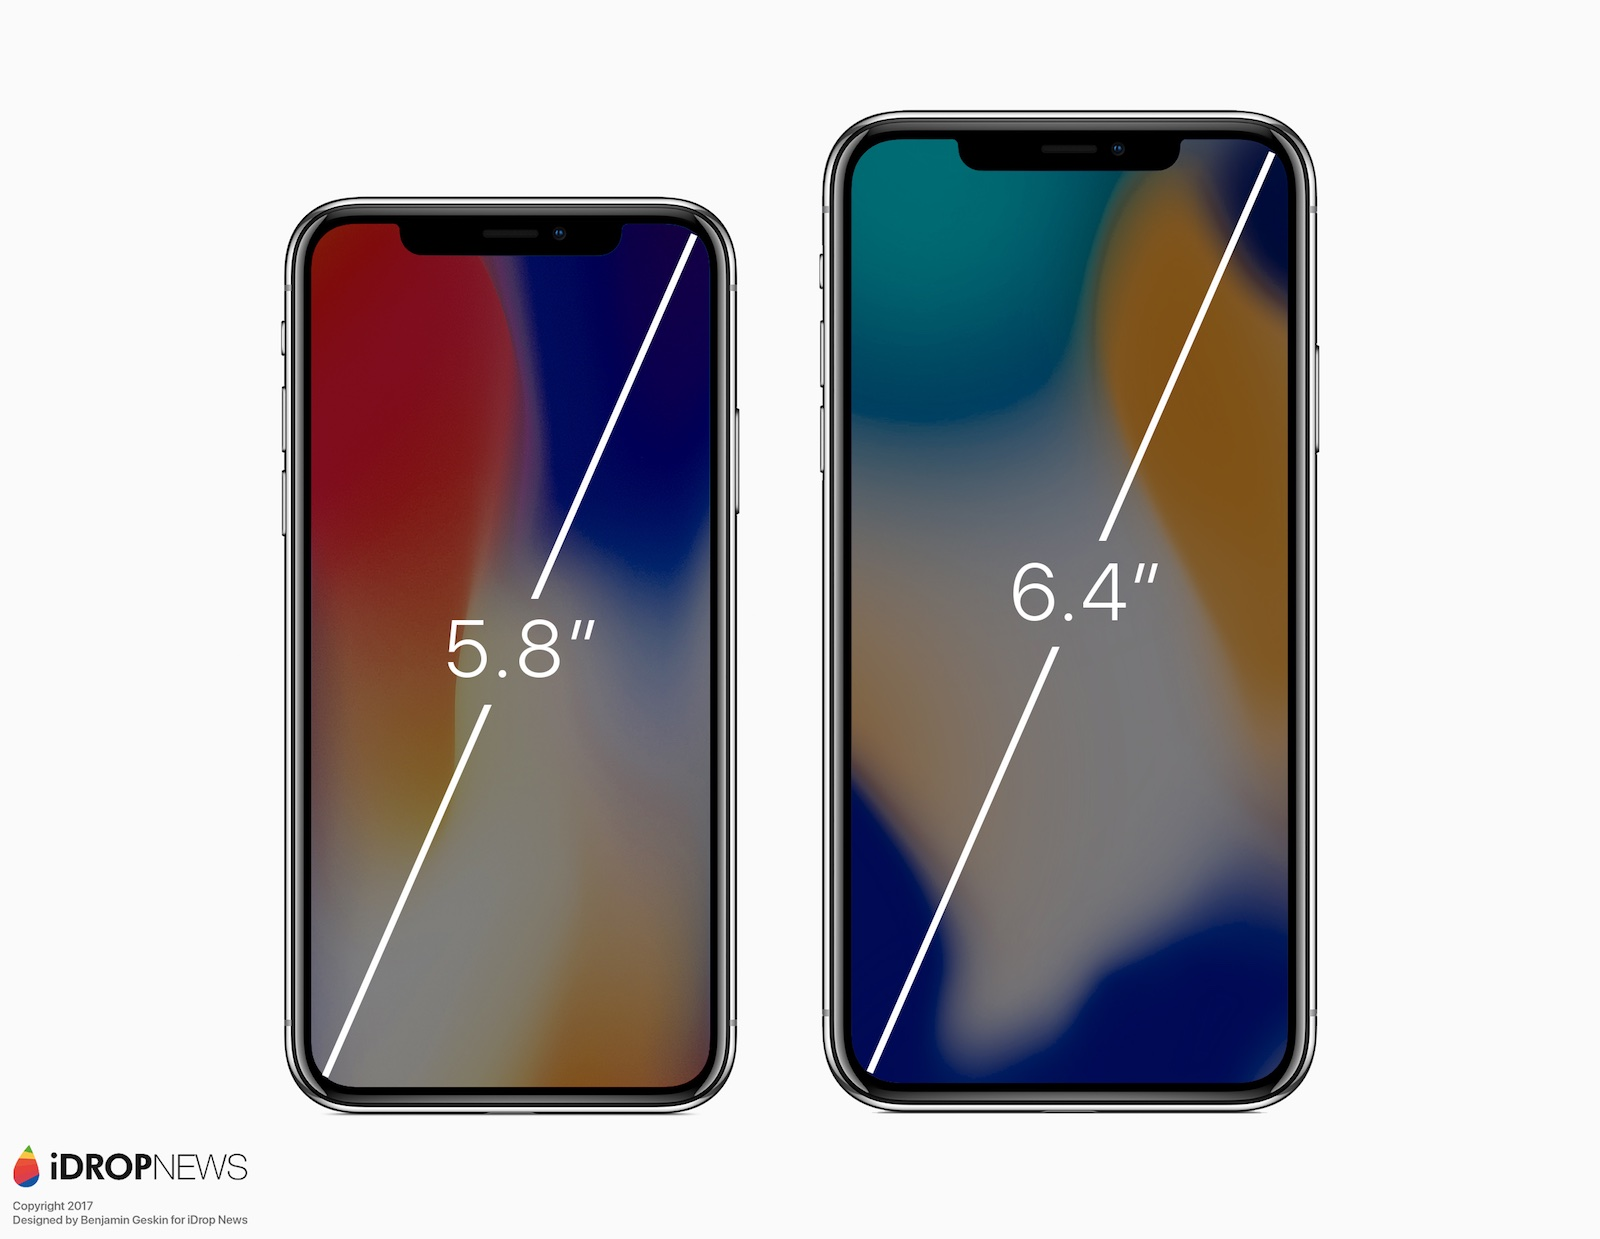 iPhone X Plus Release Date, Rumors, News, and Images